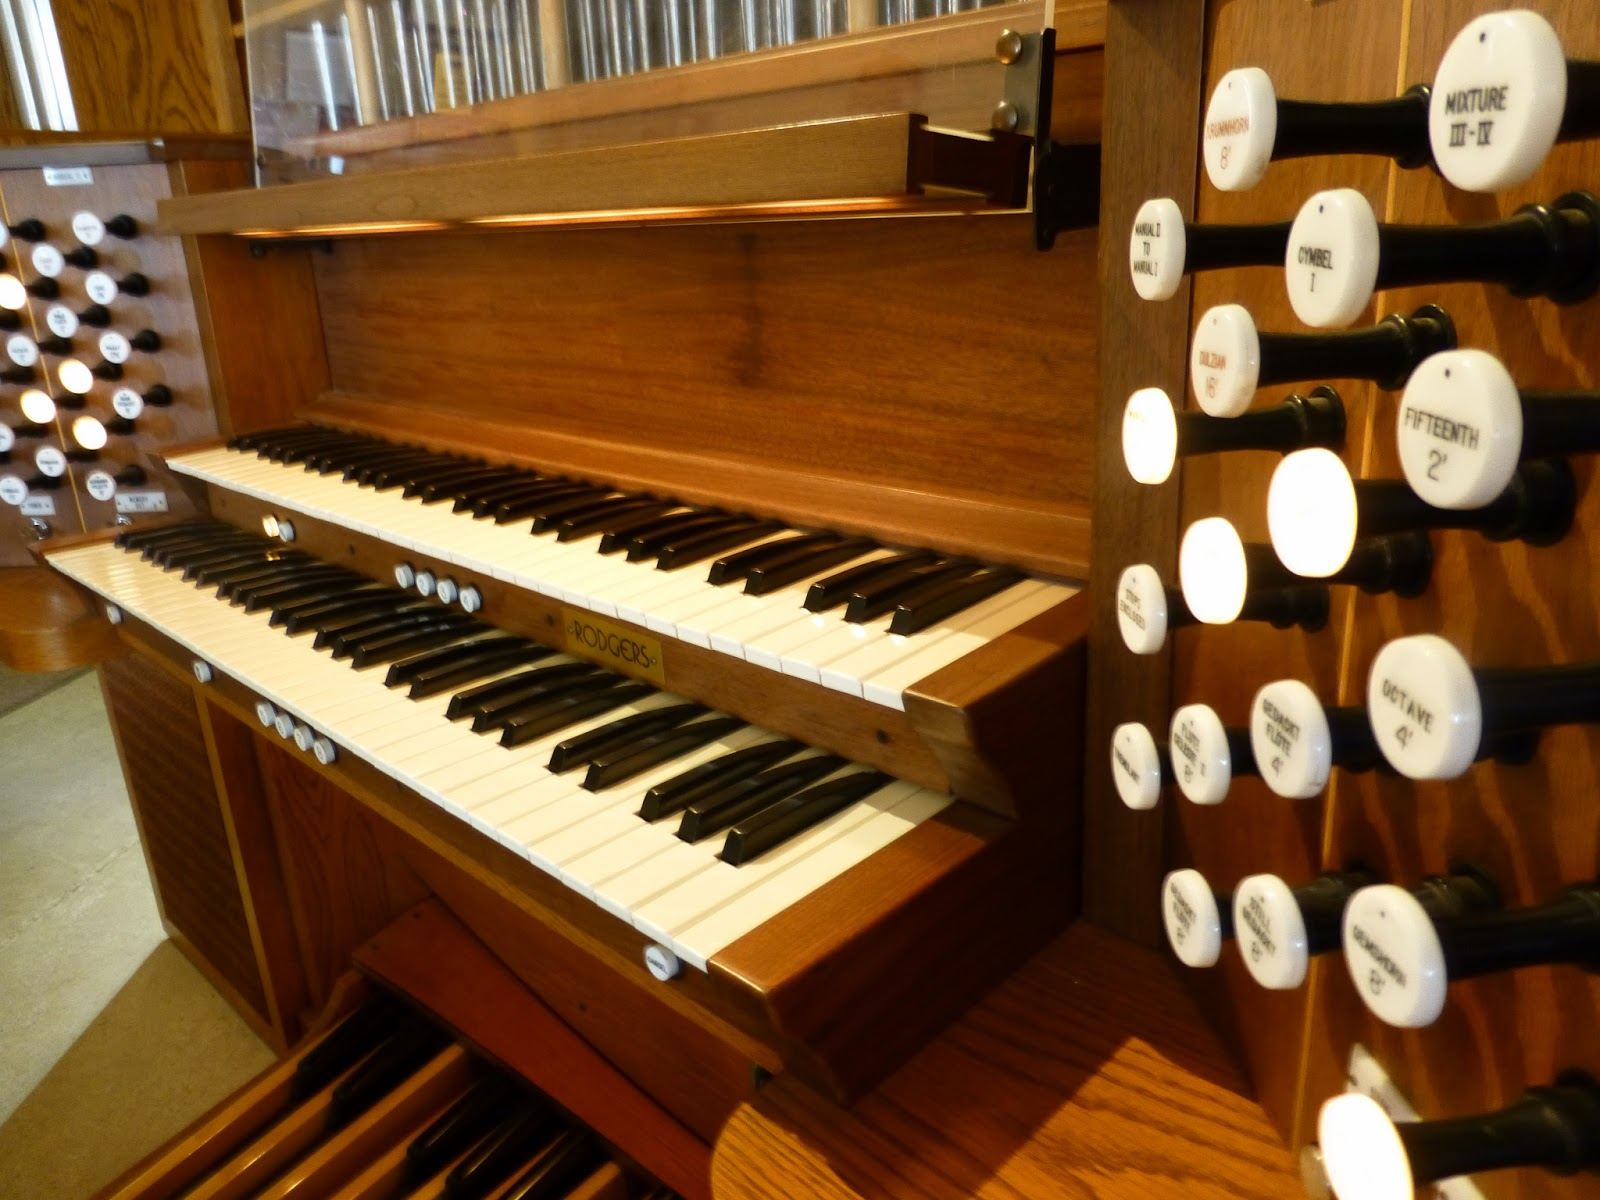 Lighted drawknobs on Rodgers 205 pipe combination organ